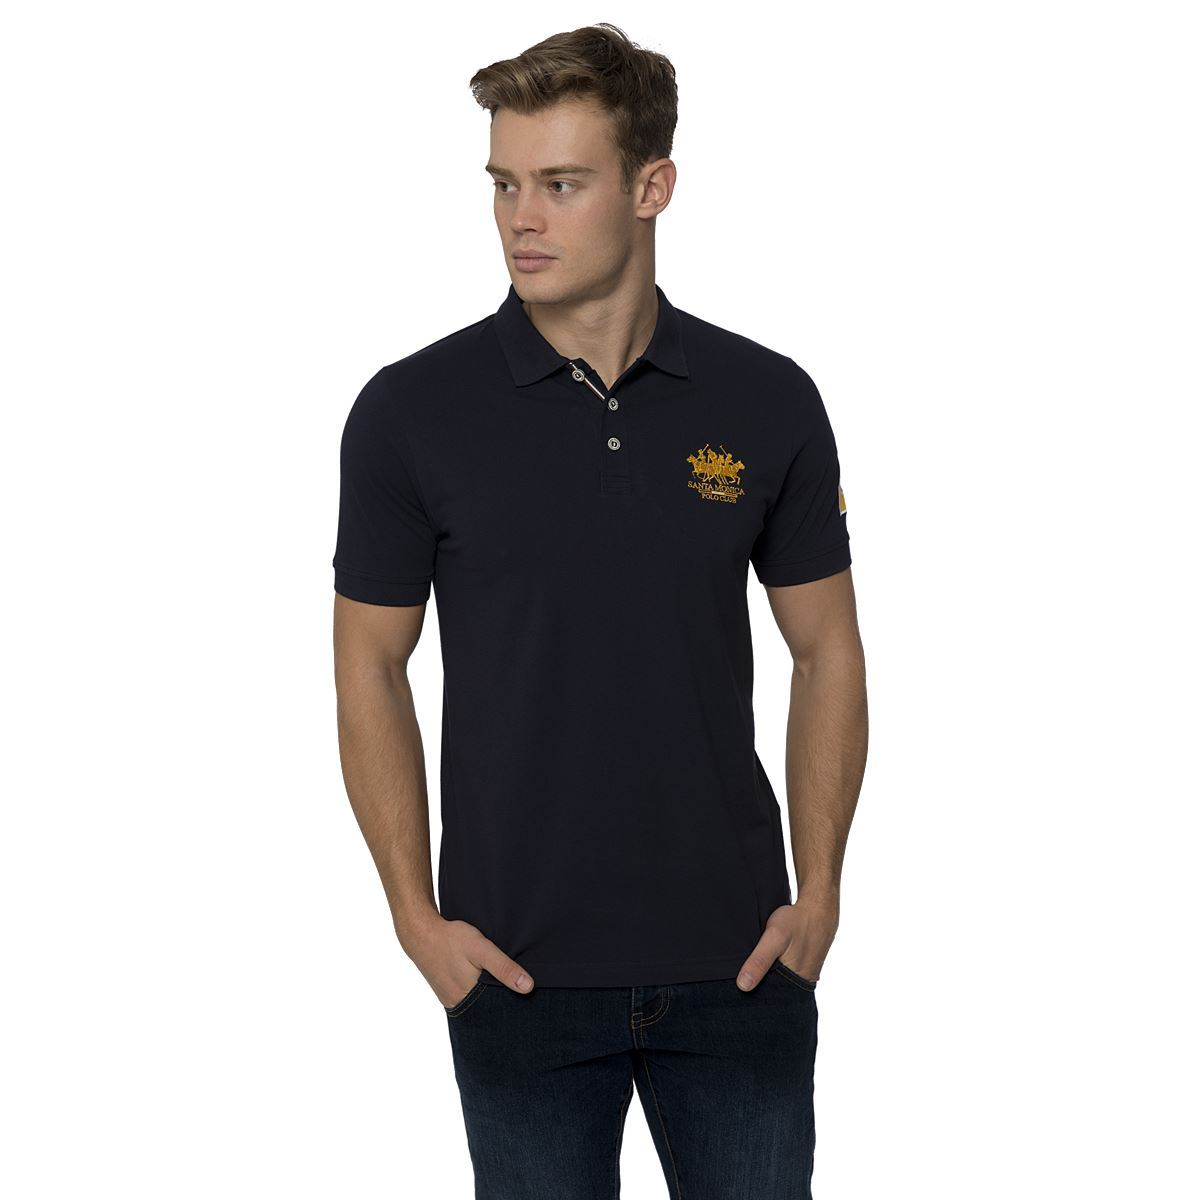 Mens casual polo shirt short sleeved top by santa monica for Mens casual polo shirts